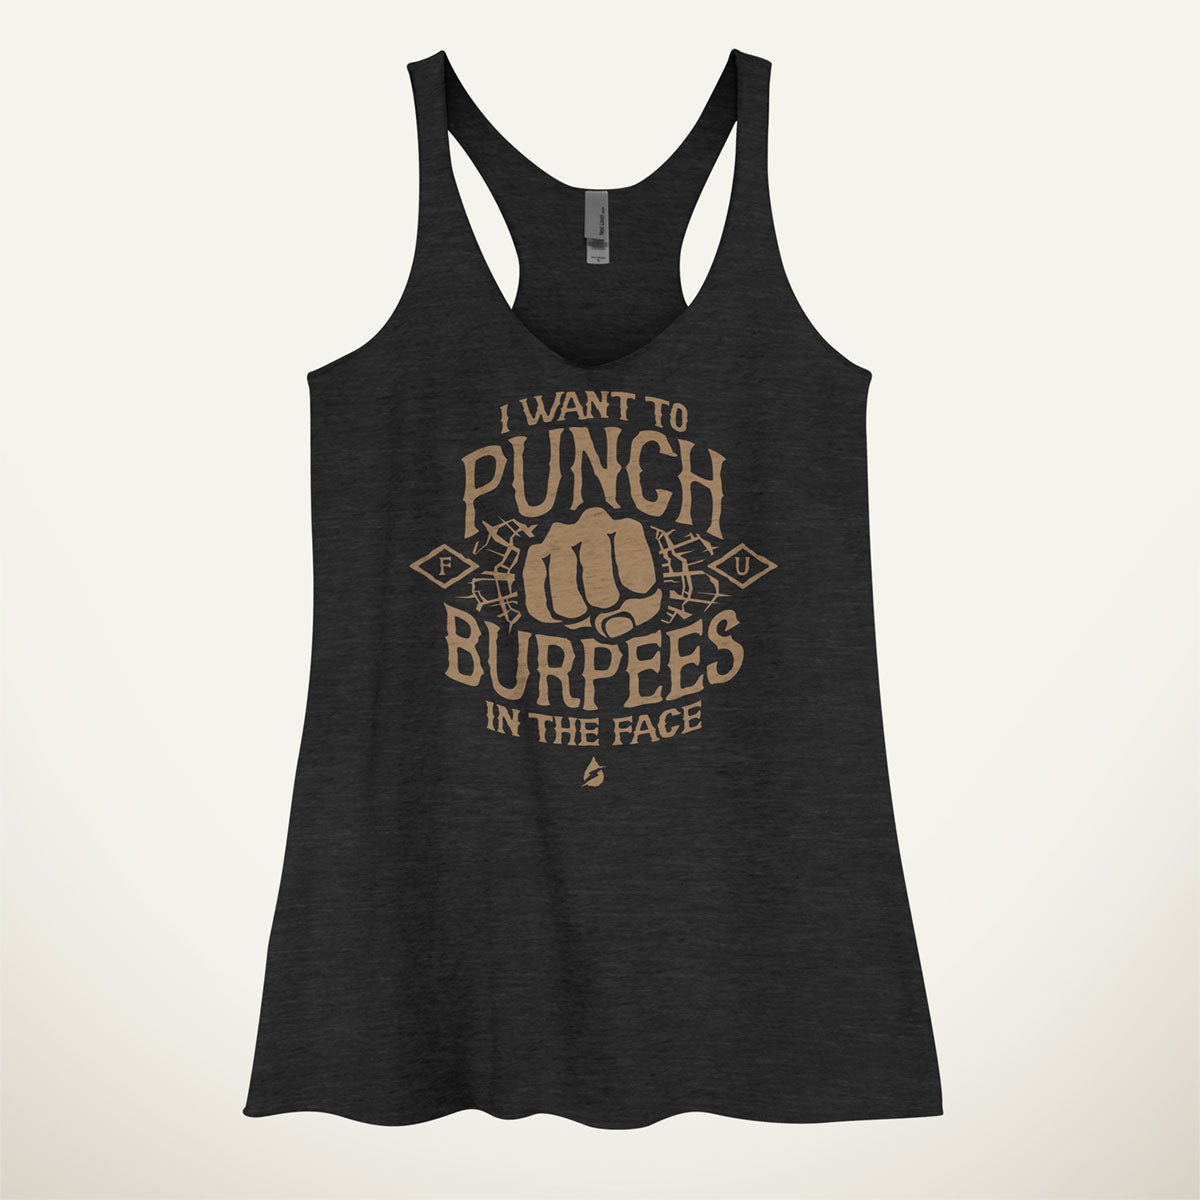 5d5ce36d07f722 I Want To Punch Burpees In The Face Women s Tank Top - Ministry of Sweat